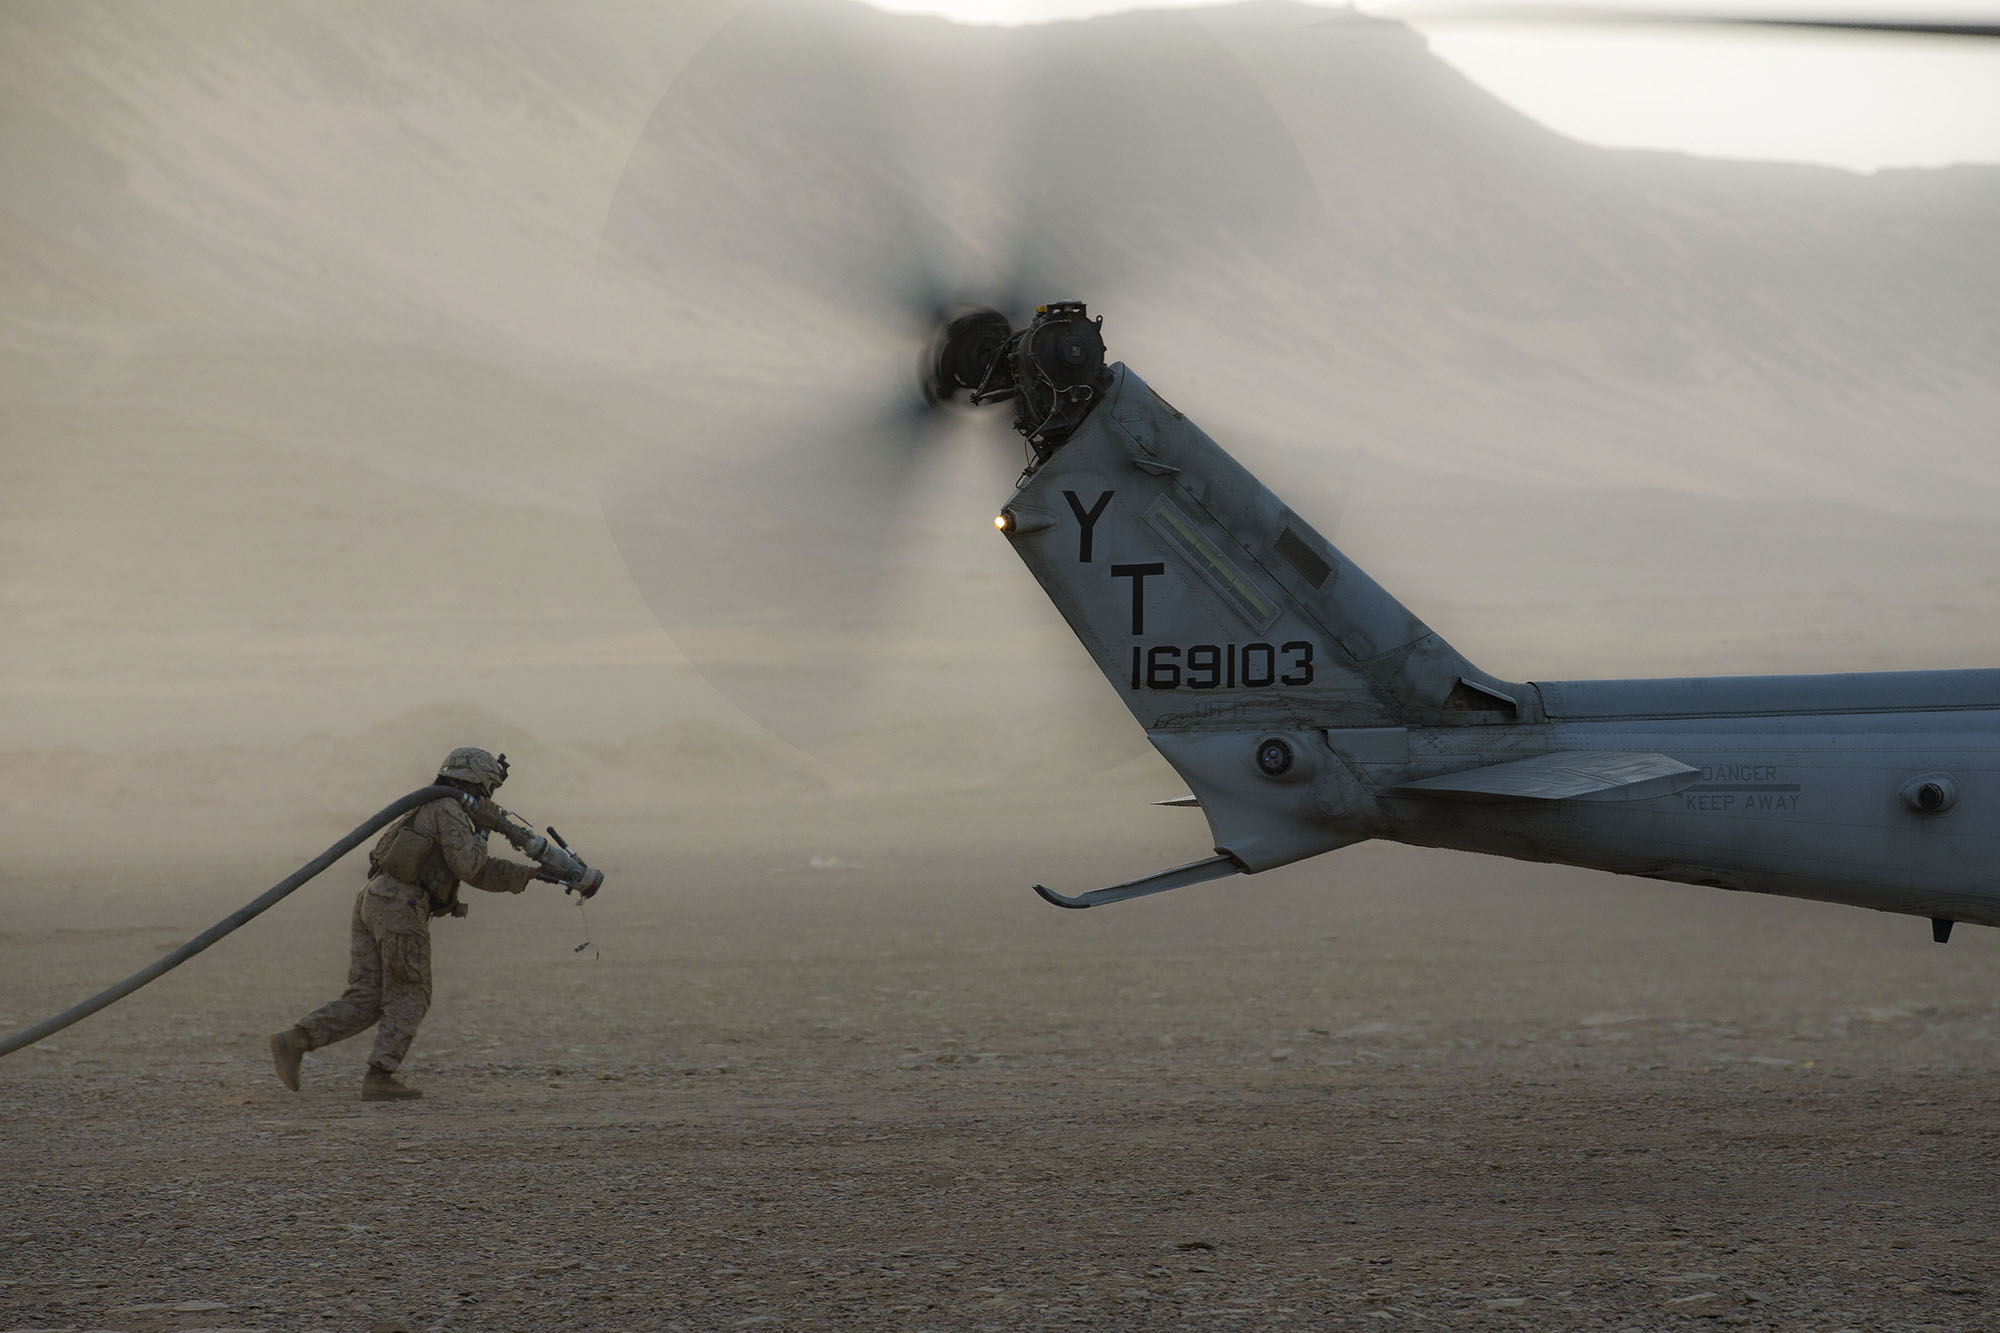 Marine Corps Cpl. Selina Lopez carries a fuel hose to a UH-1Y Venom at a forward arming and refueling point during a theater amphibious combat rehearsal (TACR) in Tabuk, Kingdom of Saudi Arabia, March 9, 2021. (Lance Cpl. Brendan Mullin/Marine Corps)